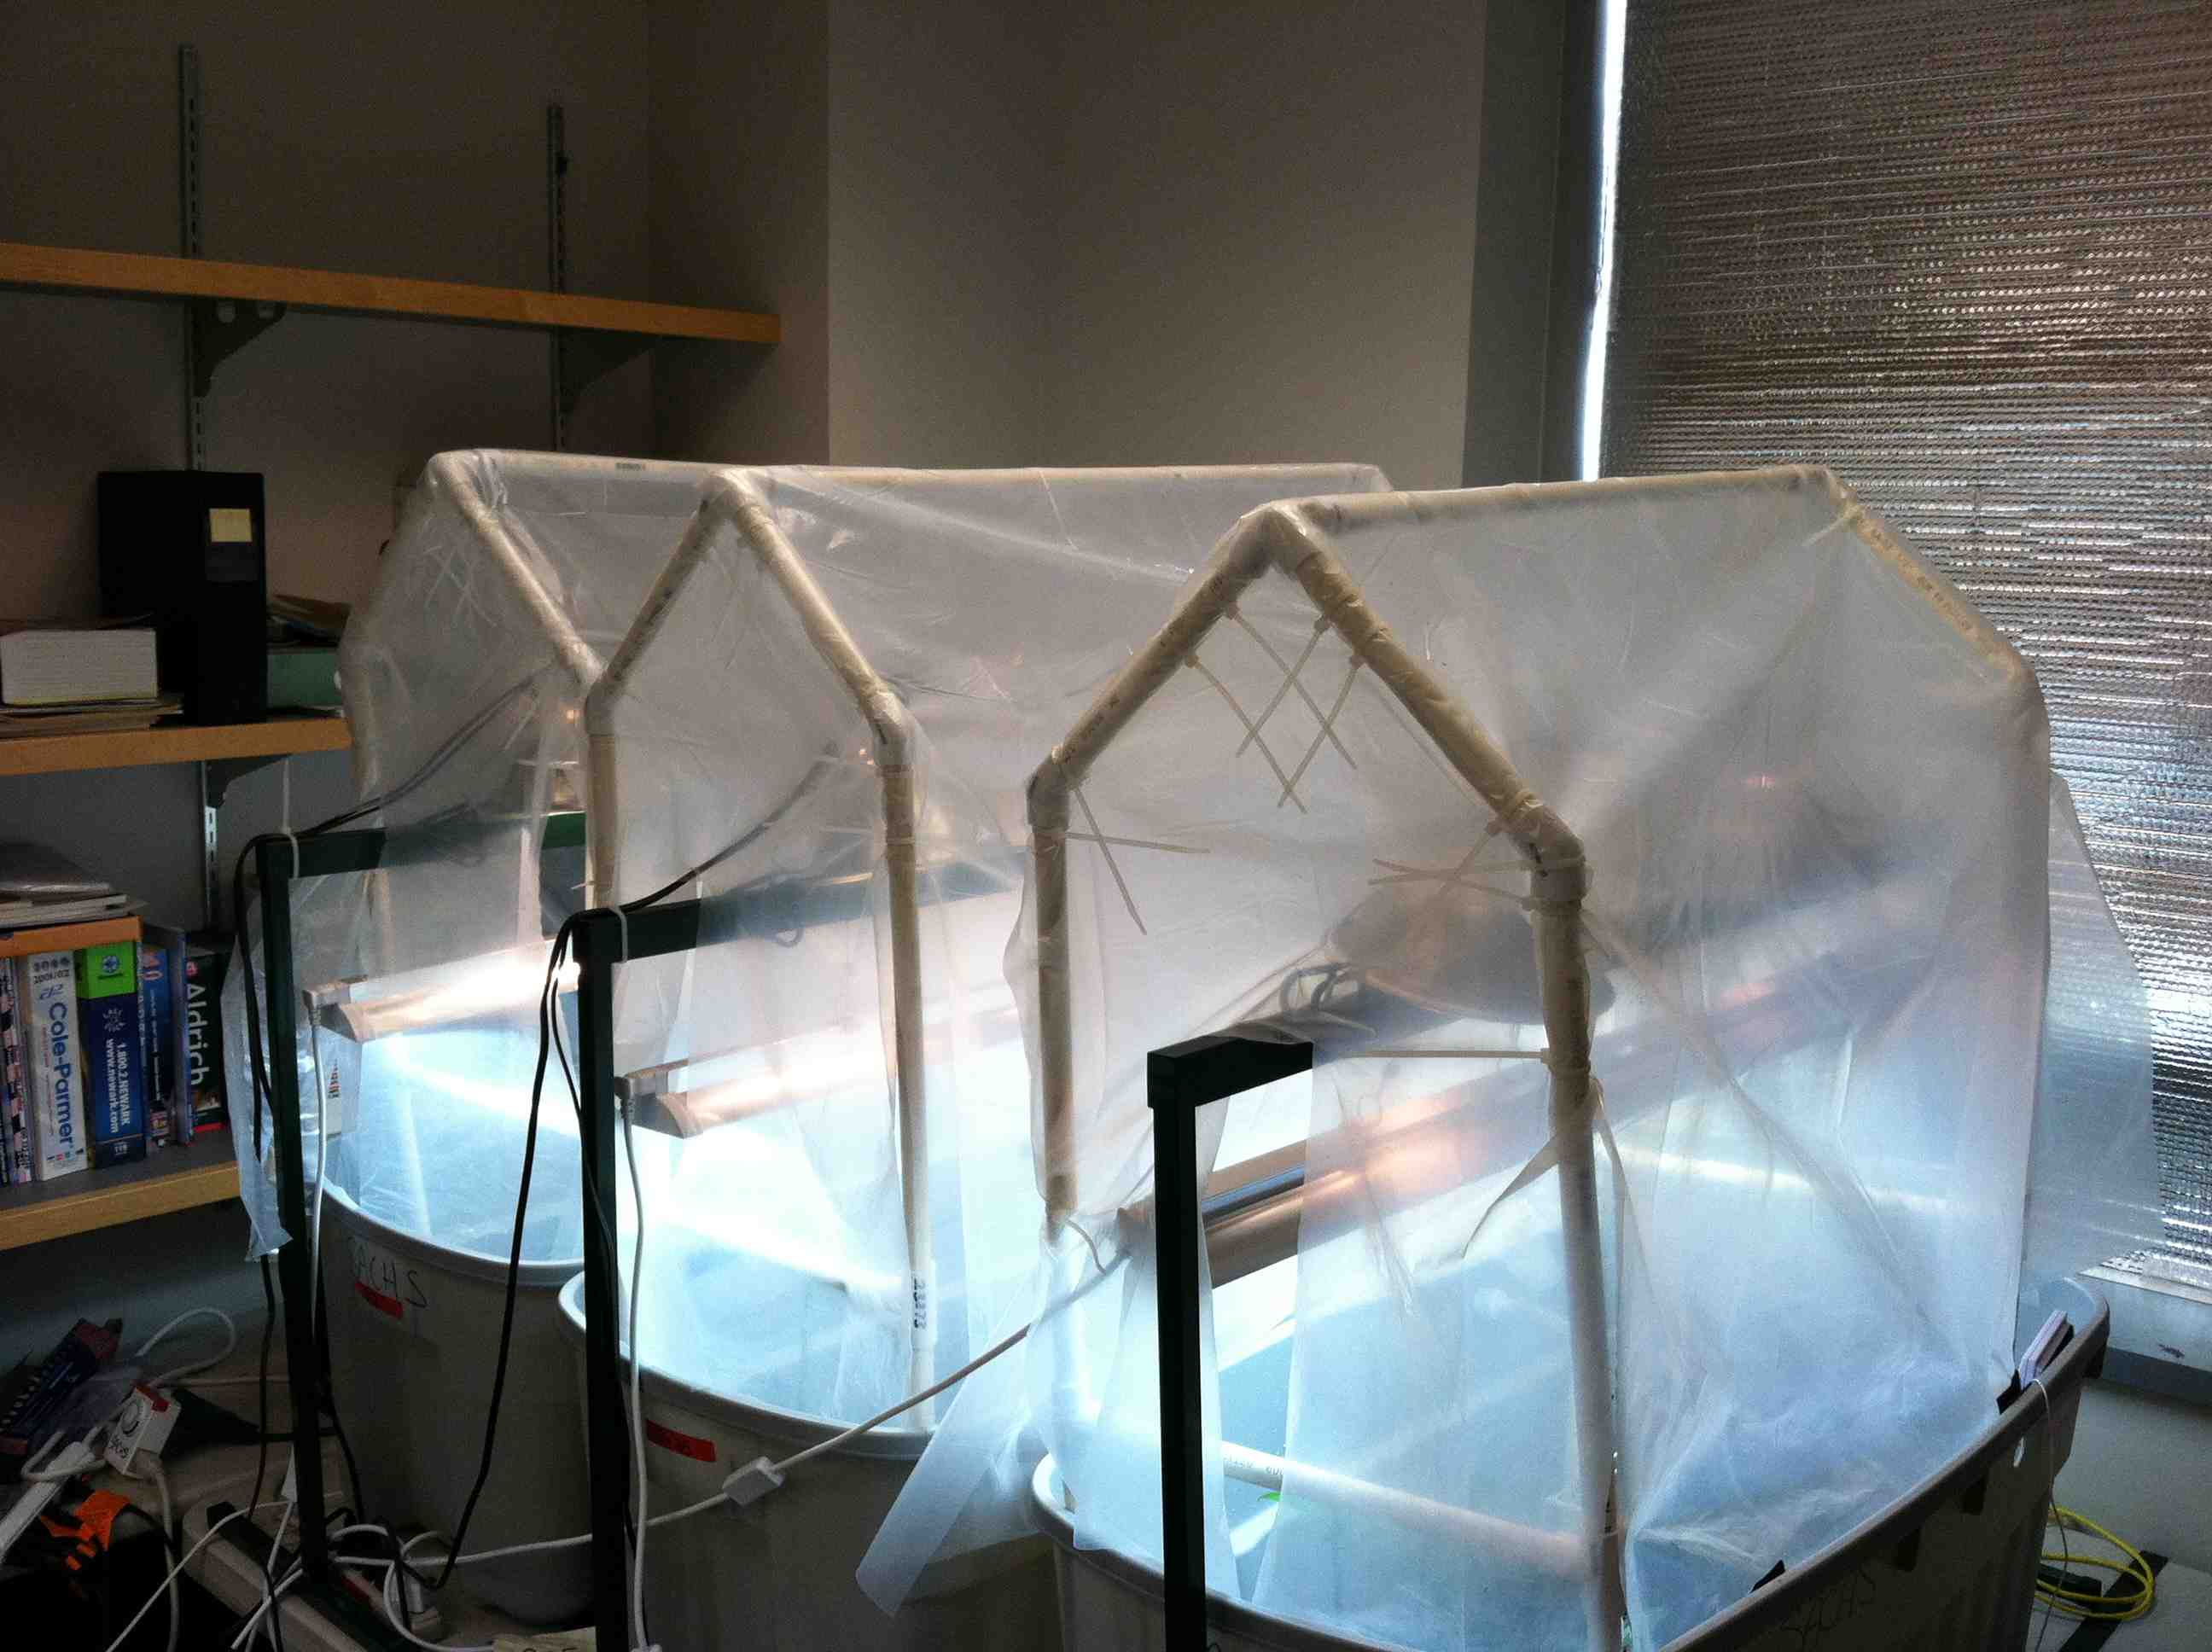 http://faculty.washington.edu/jsachs/lab/www/Research/Mangrove_Cultures_UW/Mangrove_tents_sm.jpg